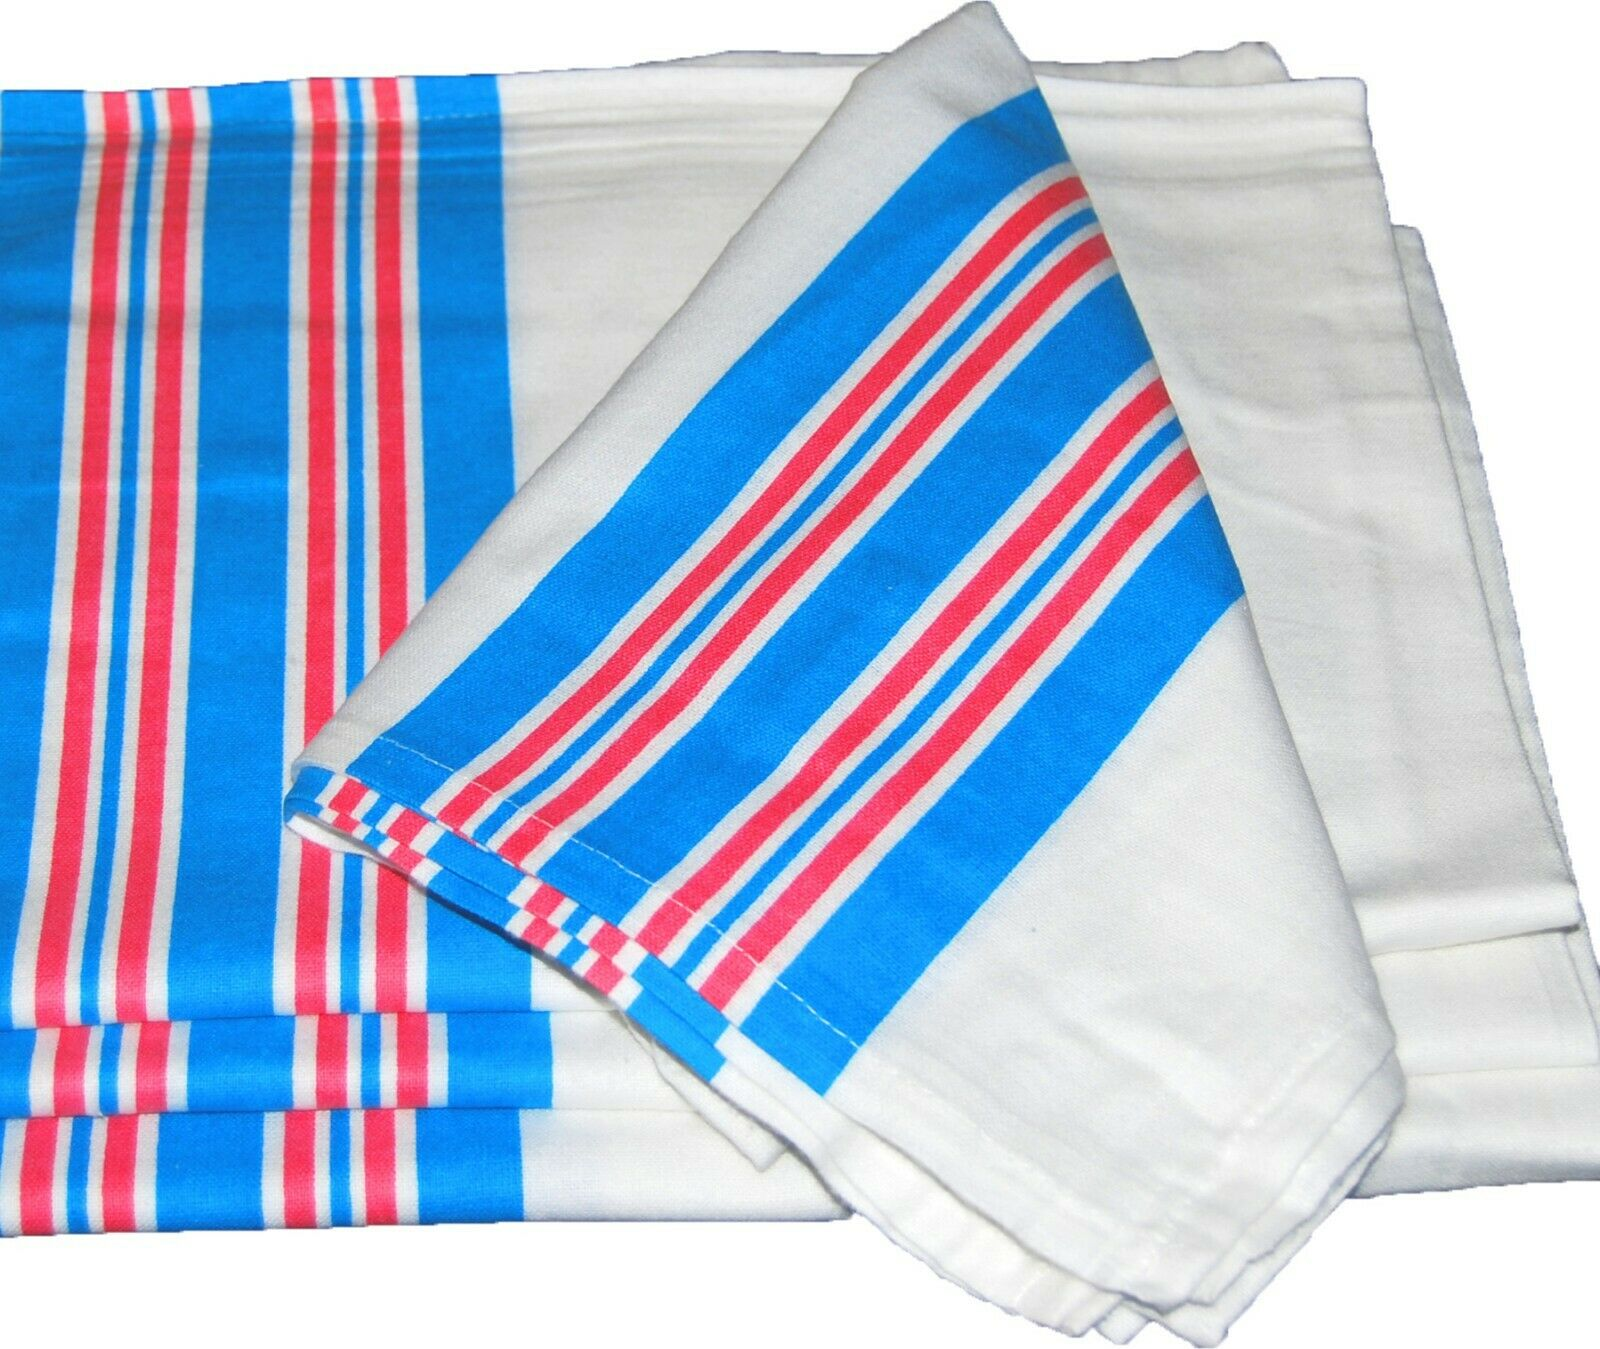 696af6db9f8 12 NEW Baby   Infant Receiving Swaddling Hospital Blankets 3